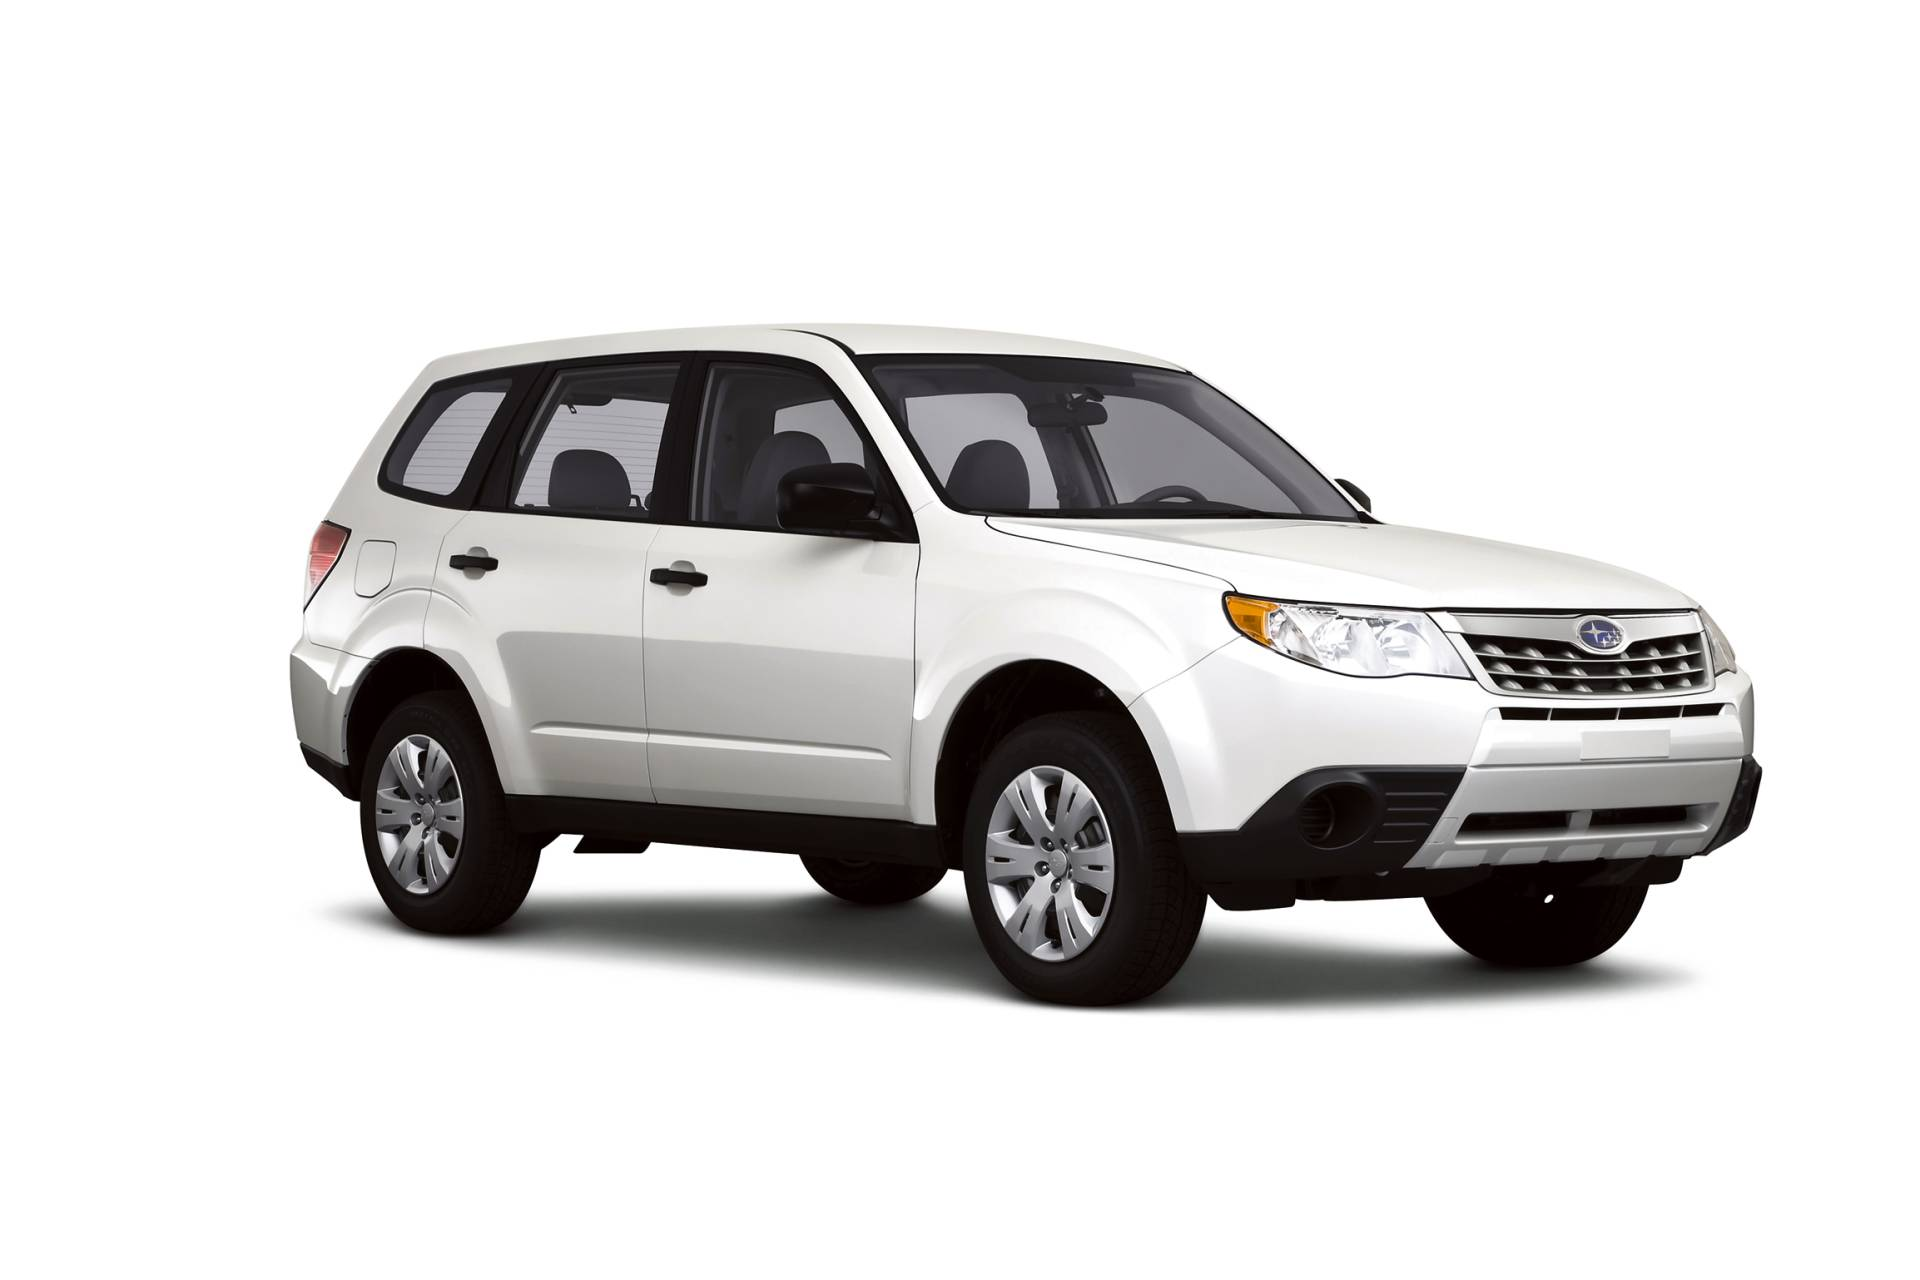 2013 Subaru Forester News and Information